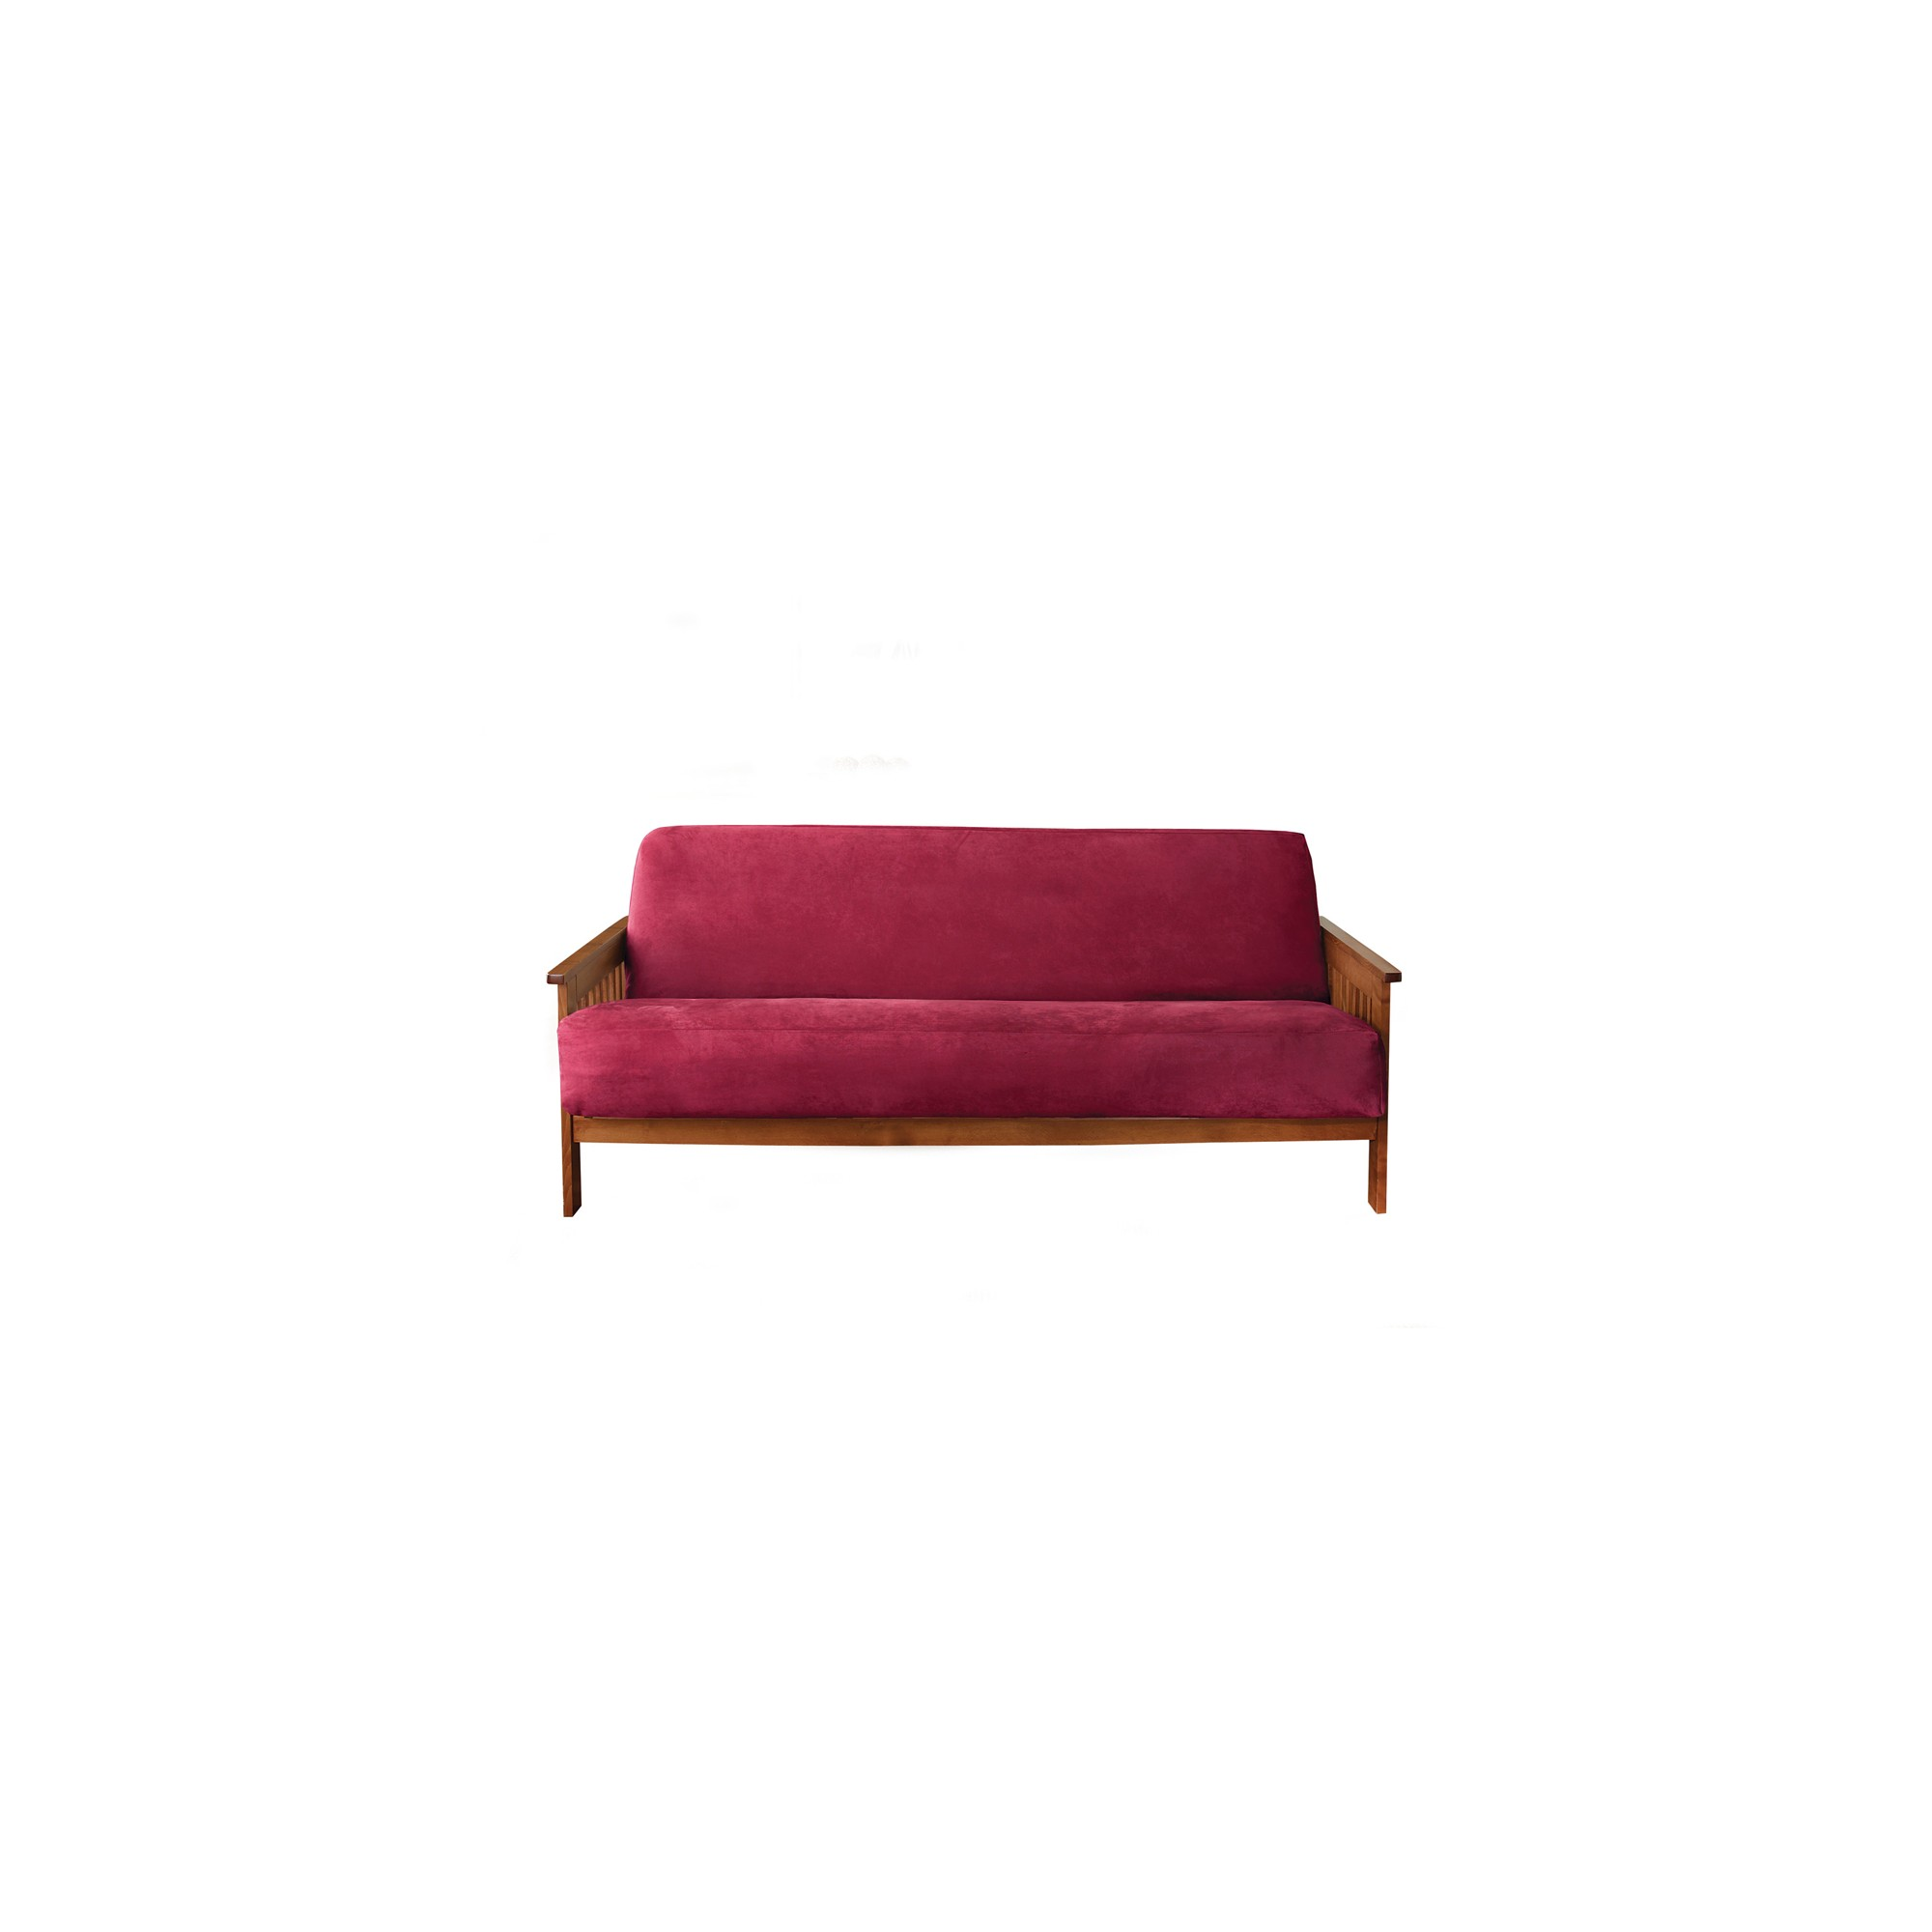 Soft Suede Futon Cover Burgundy - Sure Fit, Red